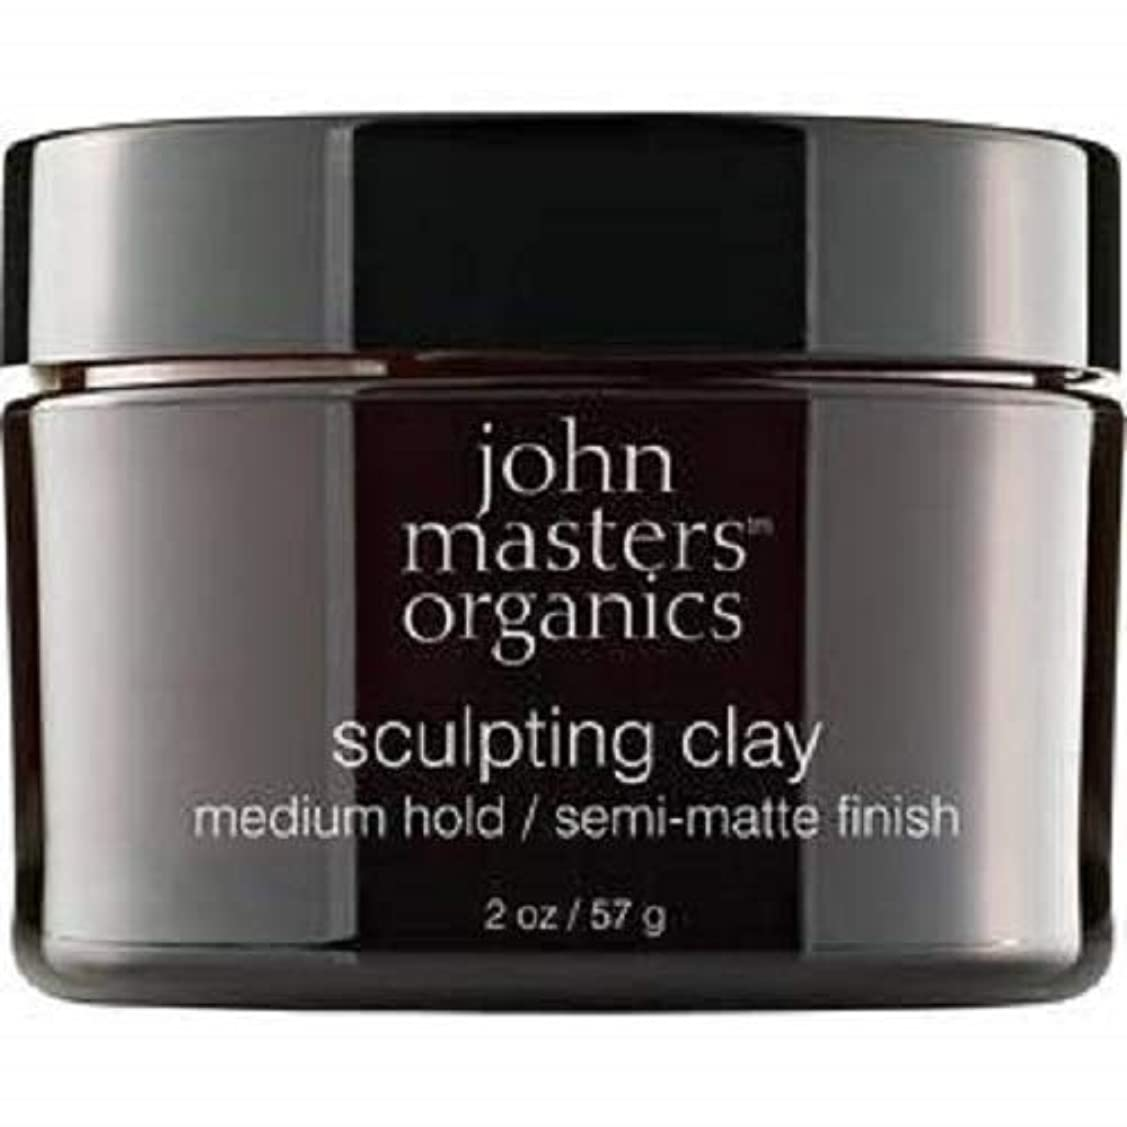 会計士望むの量John Masters Organics Sculpting Clay medium hold / semi-matt finish 2 OZ,57 g